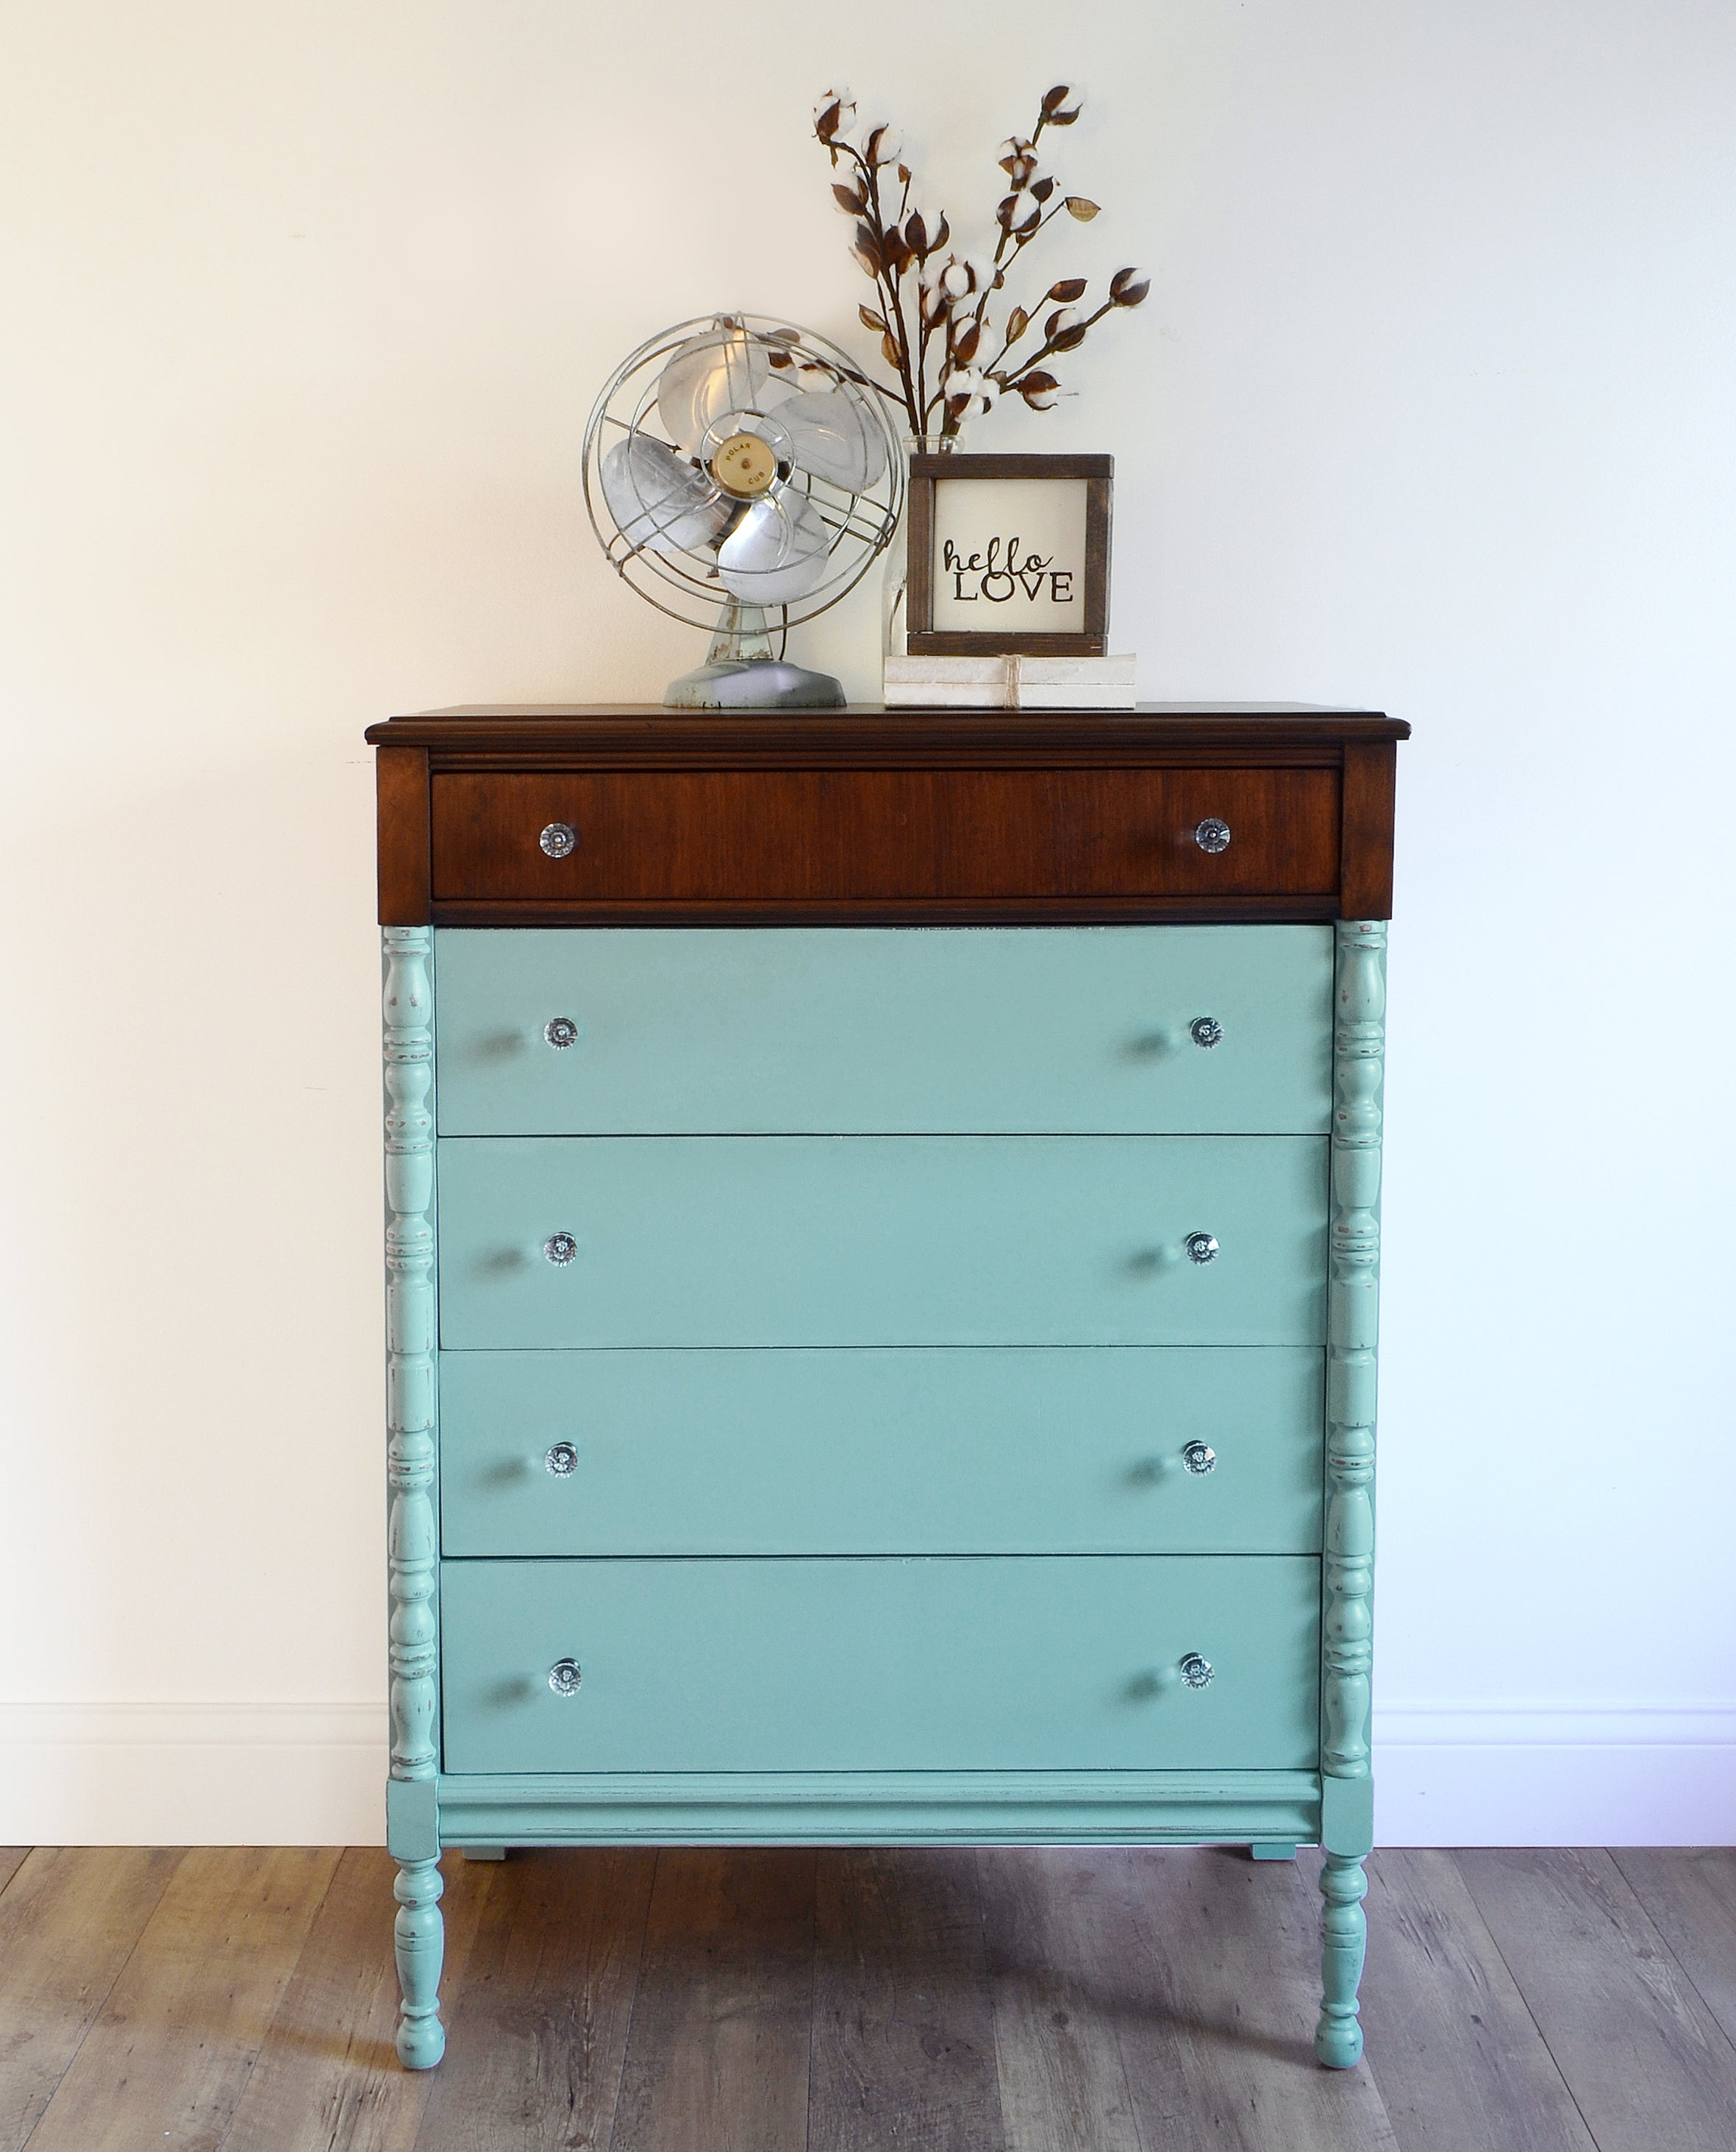 turquoise teal painted tallboy dresser with natural wood top